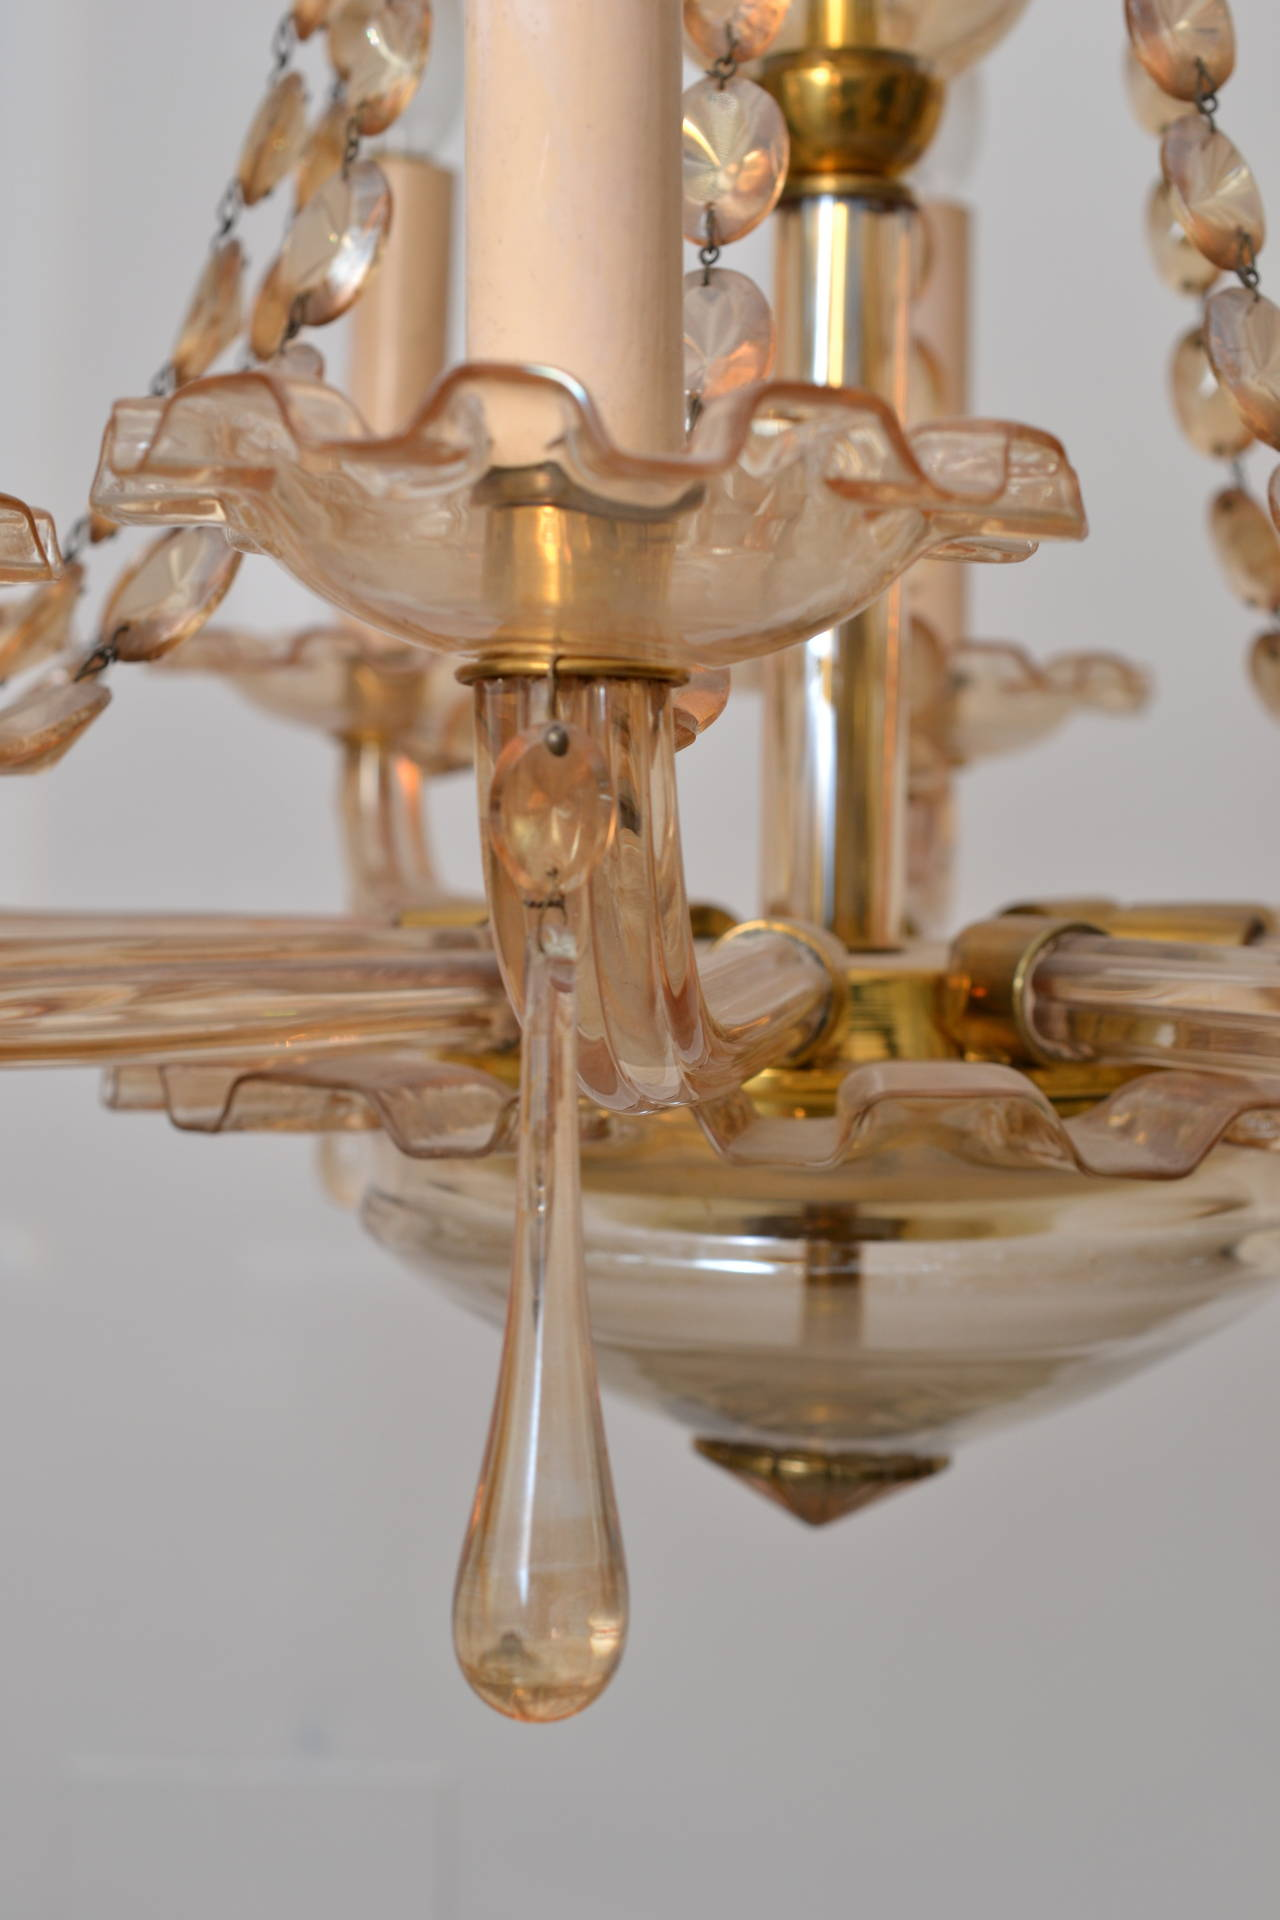 Crystal Chandelier in Rare Pink Colour For Sale at 1stdibs